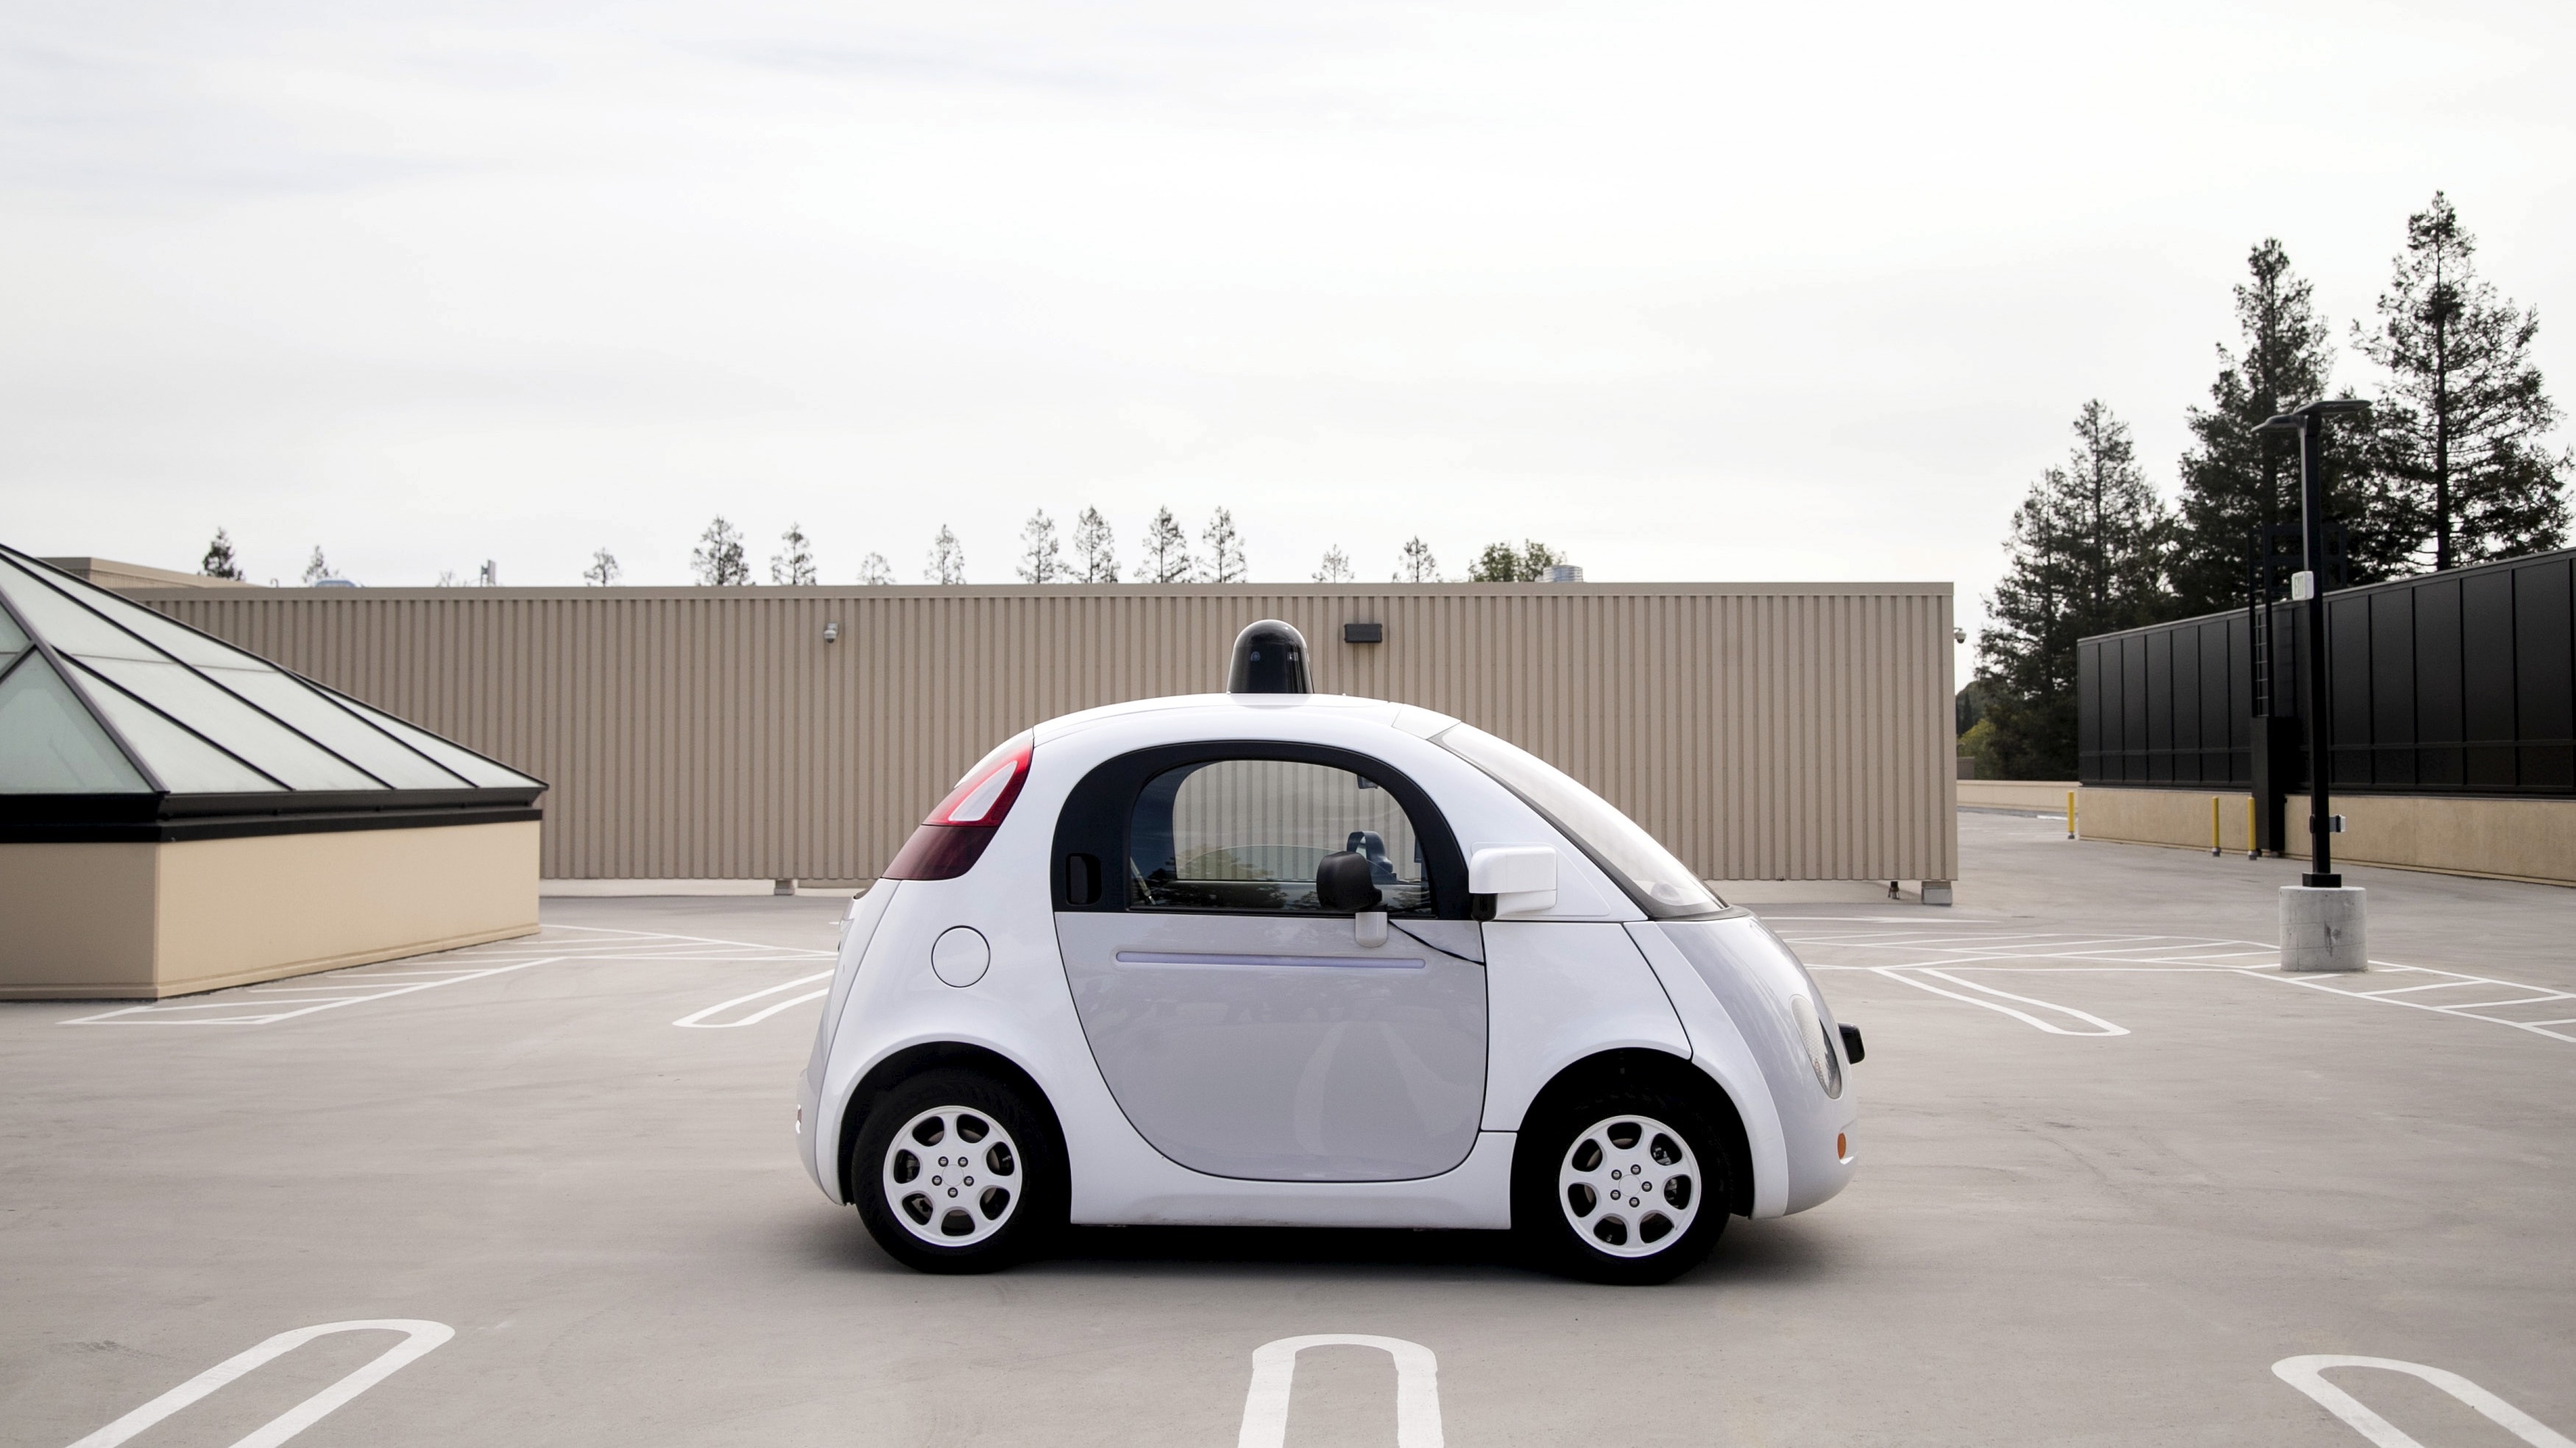 Apple (AAPL) poached a Google (GOOGL) inventor who had been working ...